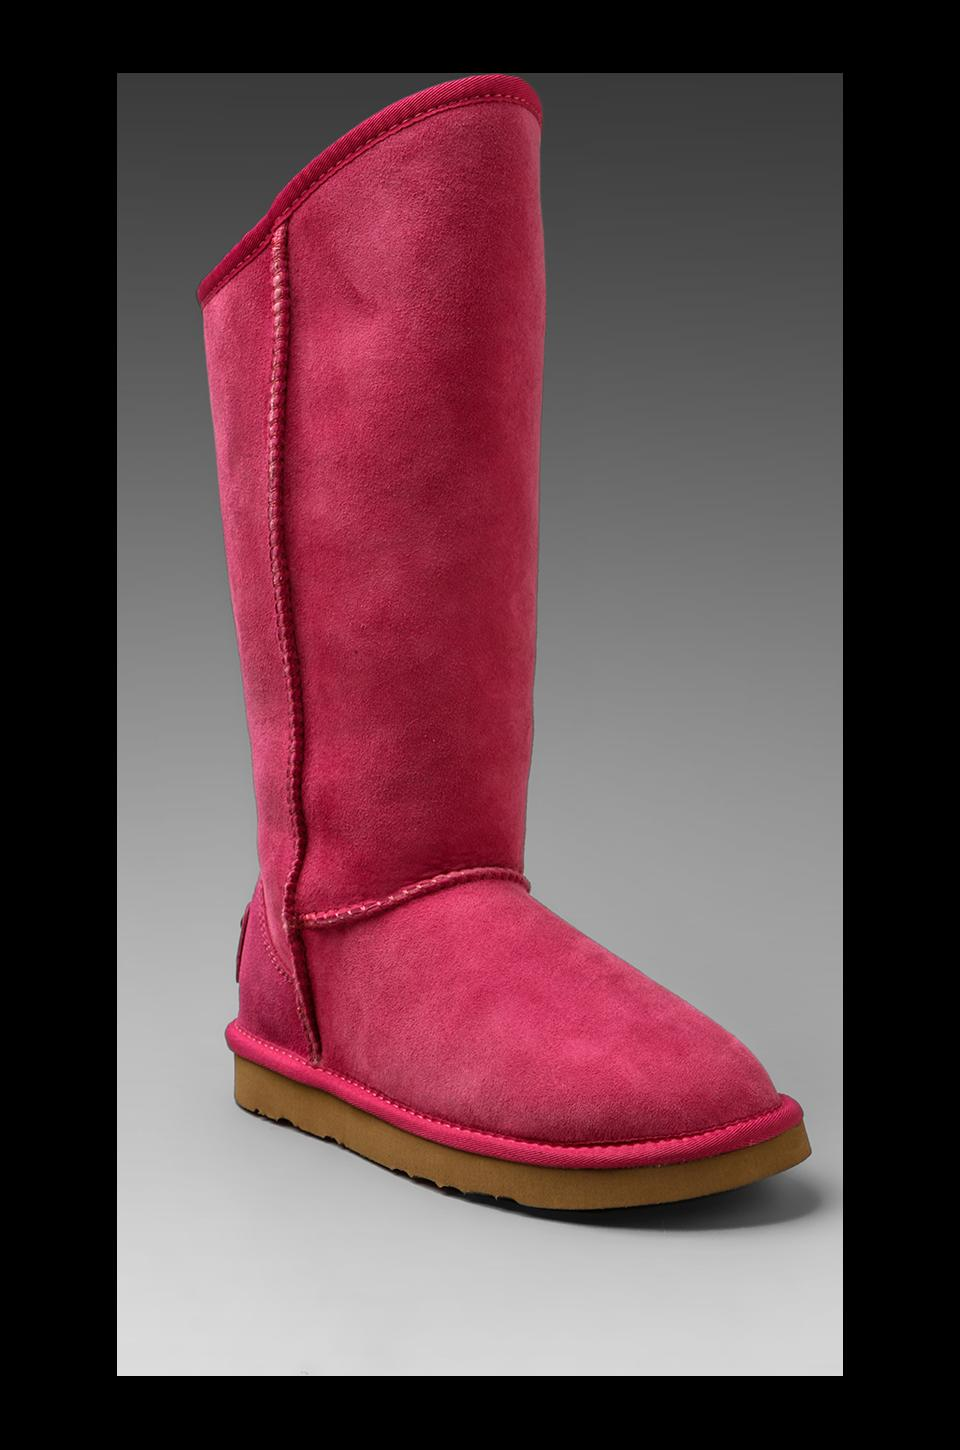 Australia Luxe Collective Cosy Tall Boot with Sheep Shearling in Violet